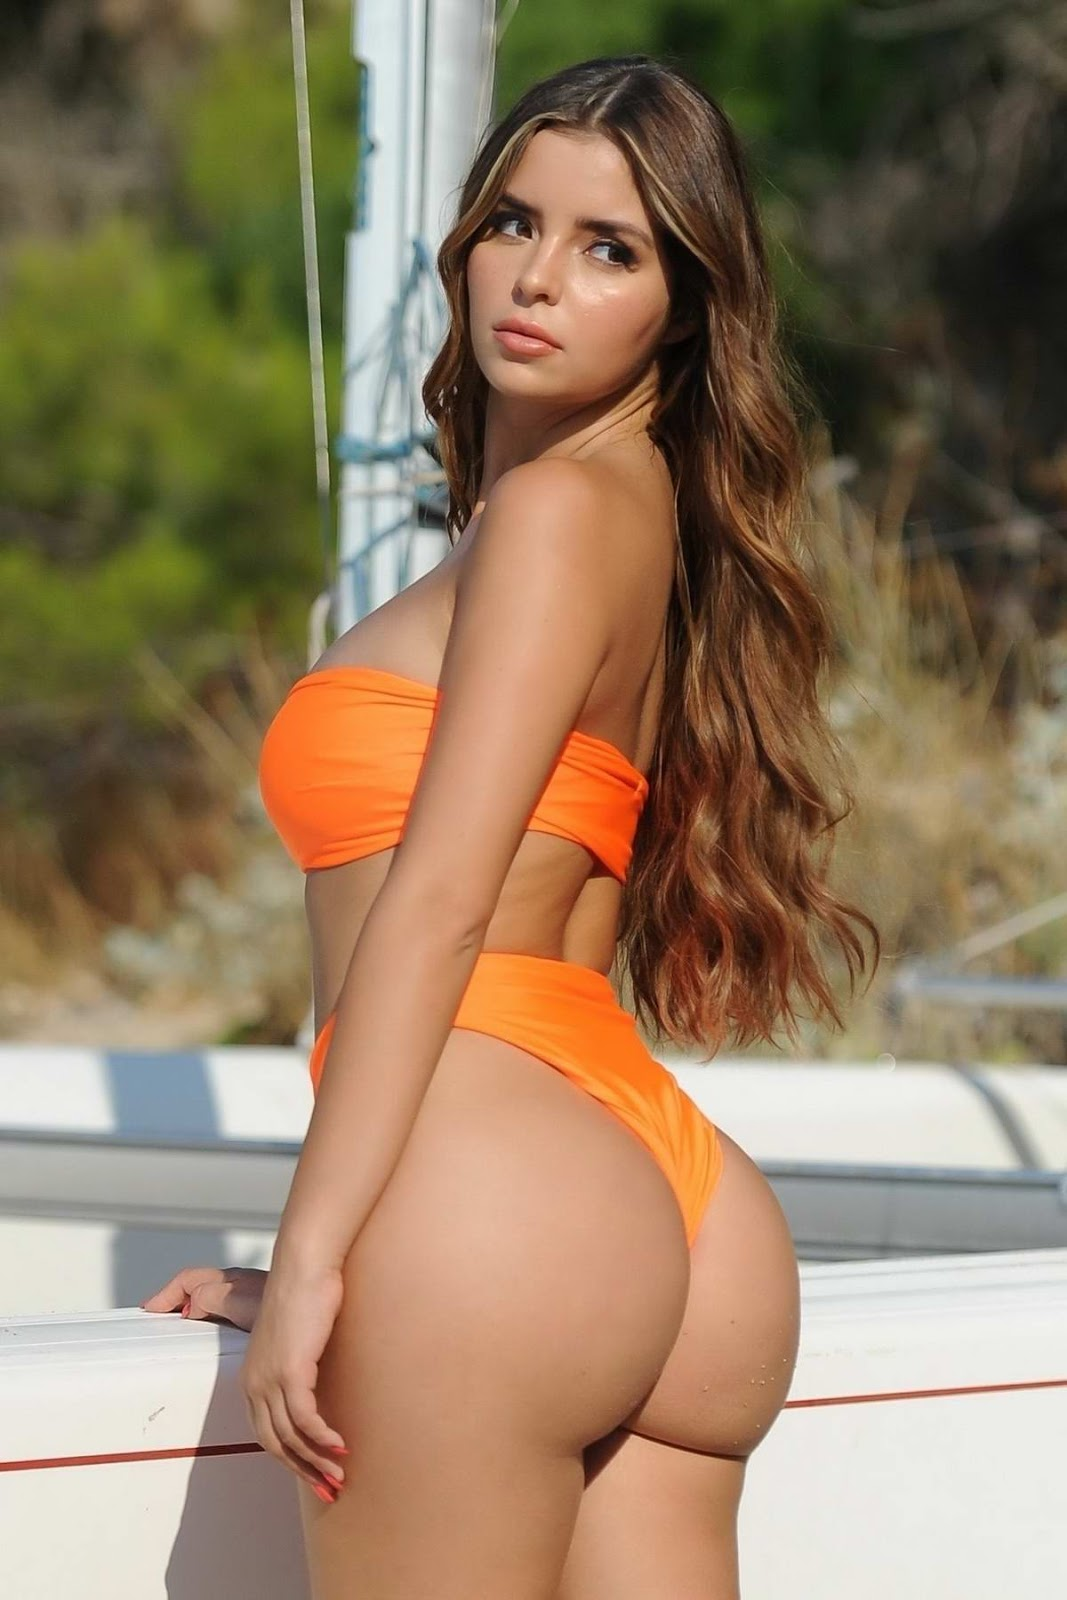 Demi Rose Mawby rocks an orange bikini during a photoshoot for clothing line Ibiza X By Demi Rose 2018